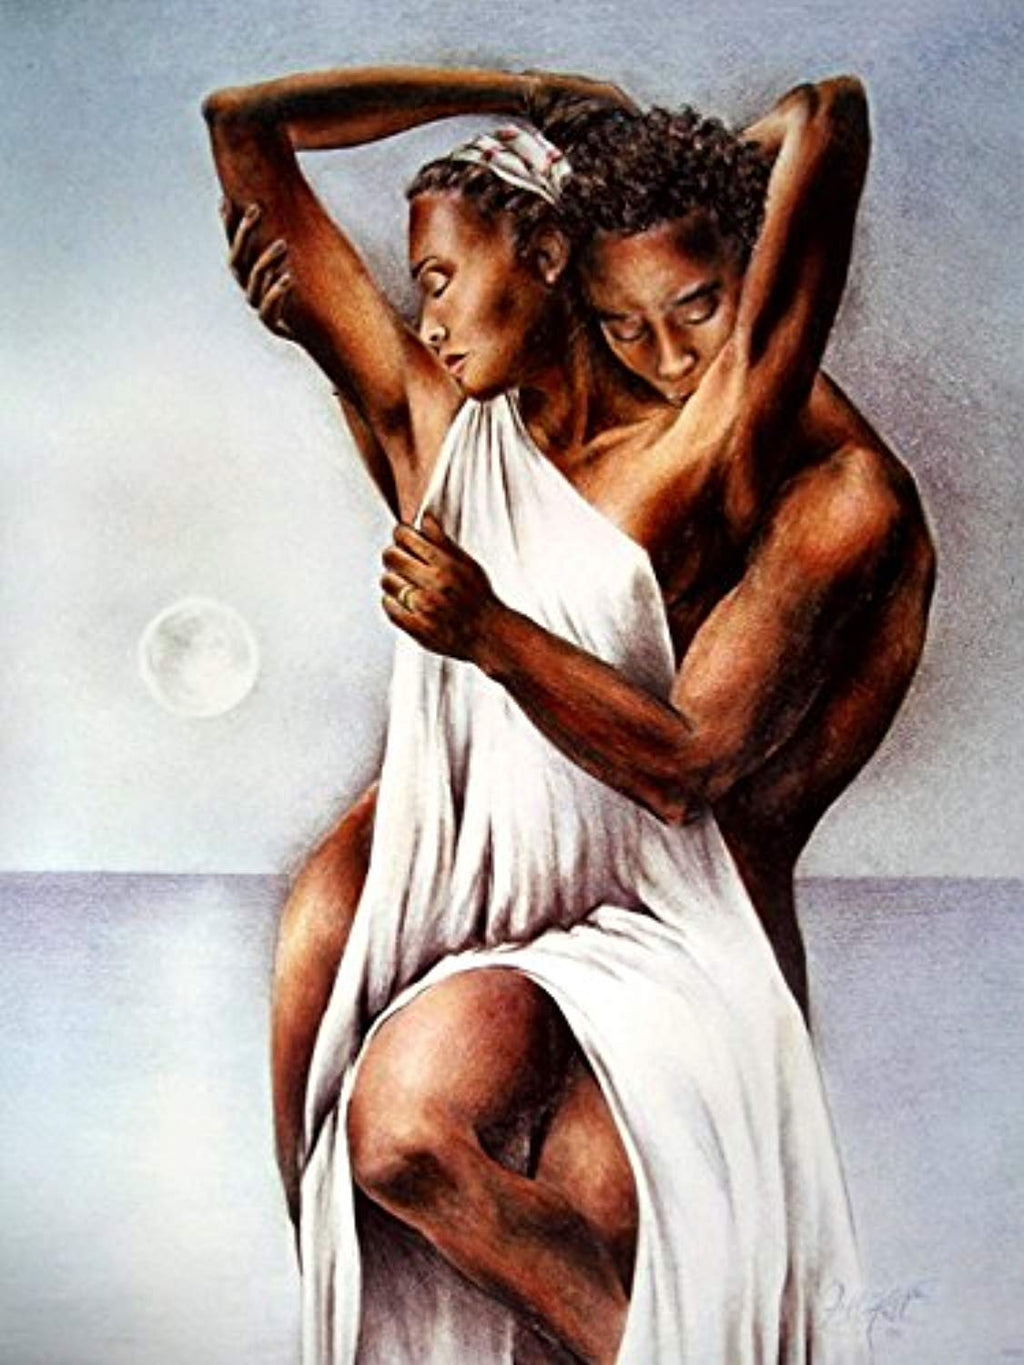 African American Love Hot Painting Art 32x24 Print Poster